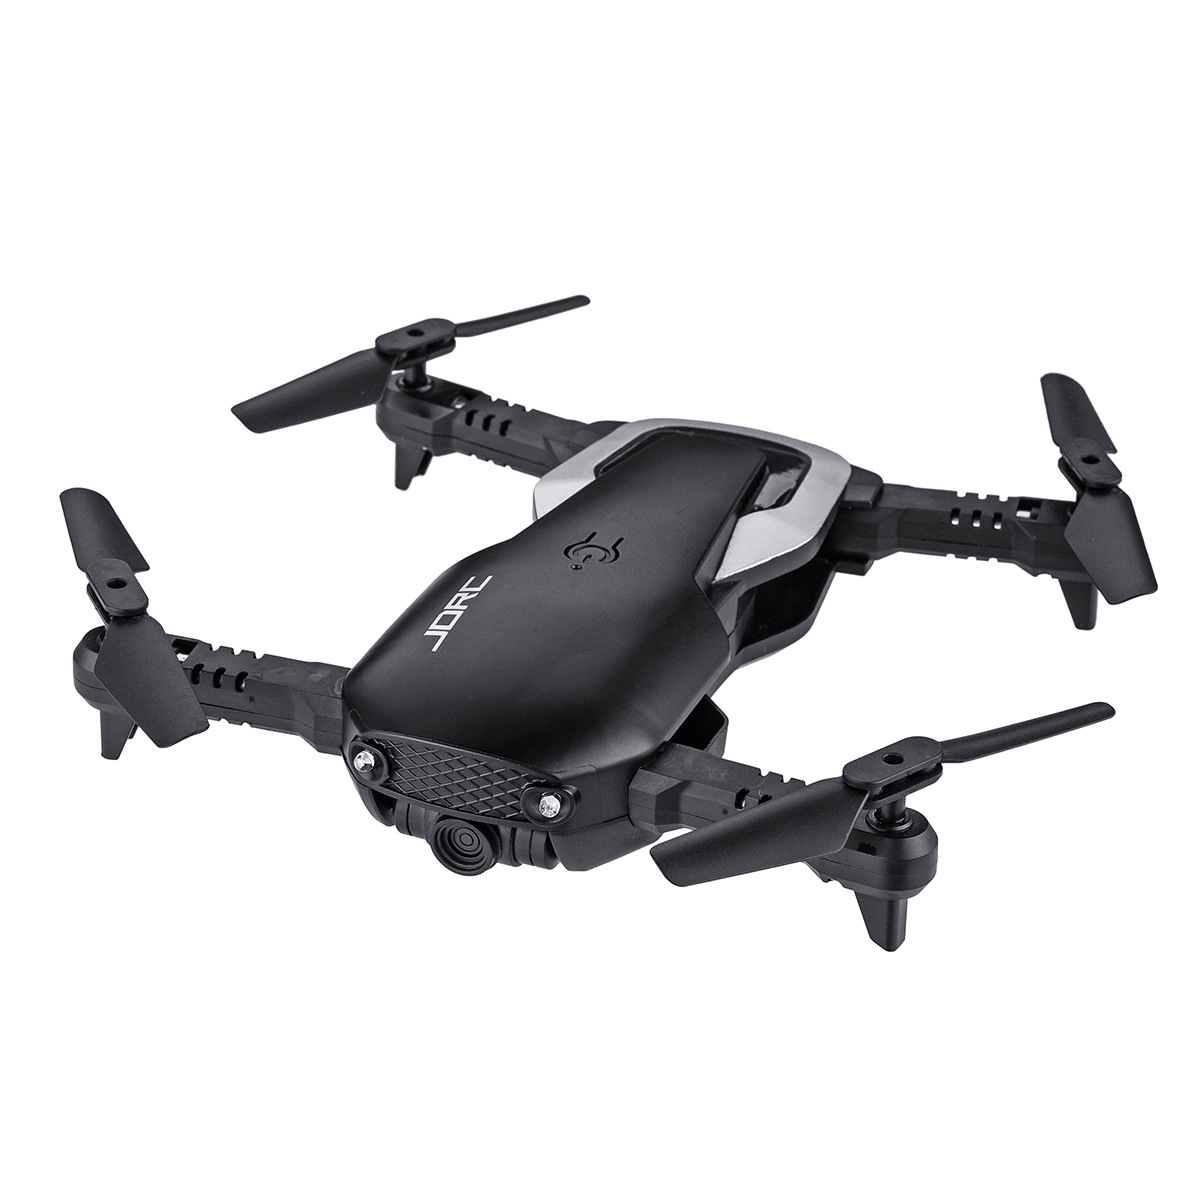 Cross Border For JD-23 With WiFi High-definition Camera Remote Control Aircraft Unmanned Aerial Vehicle Folding Quadcopter